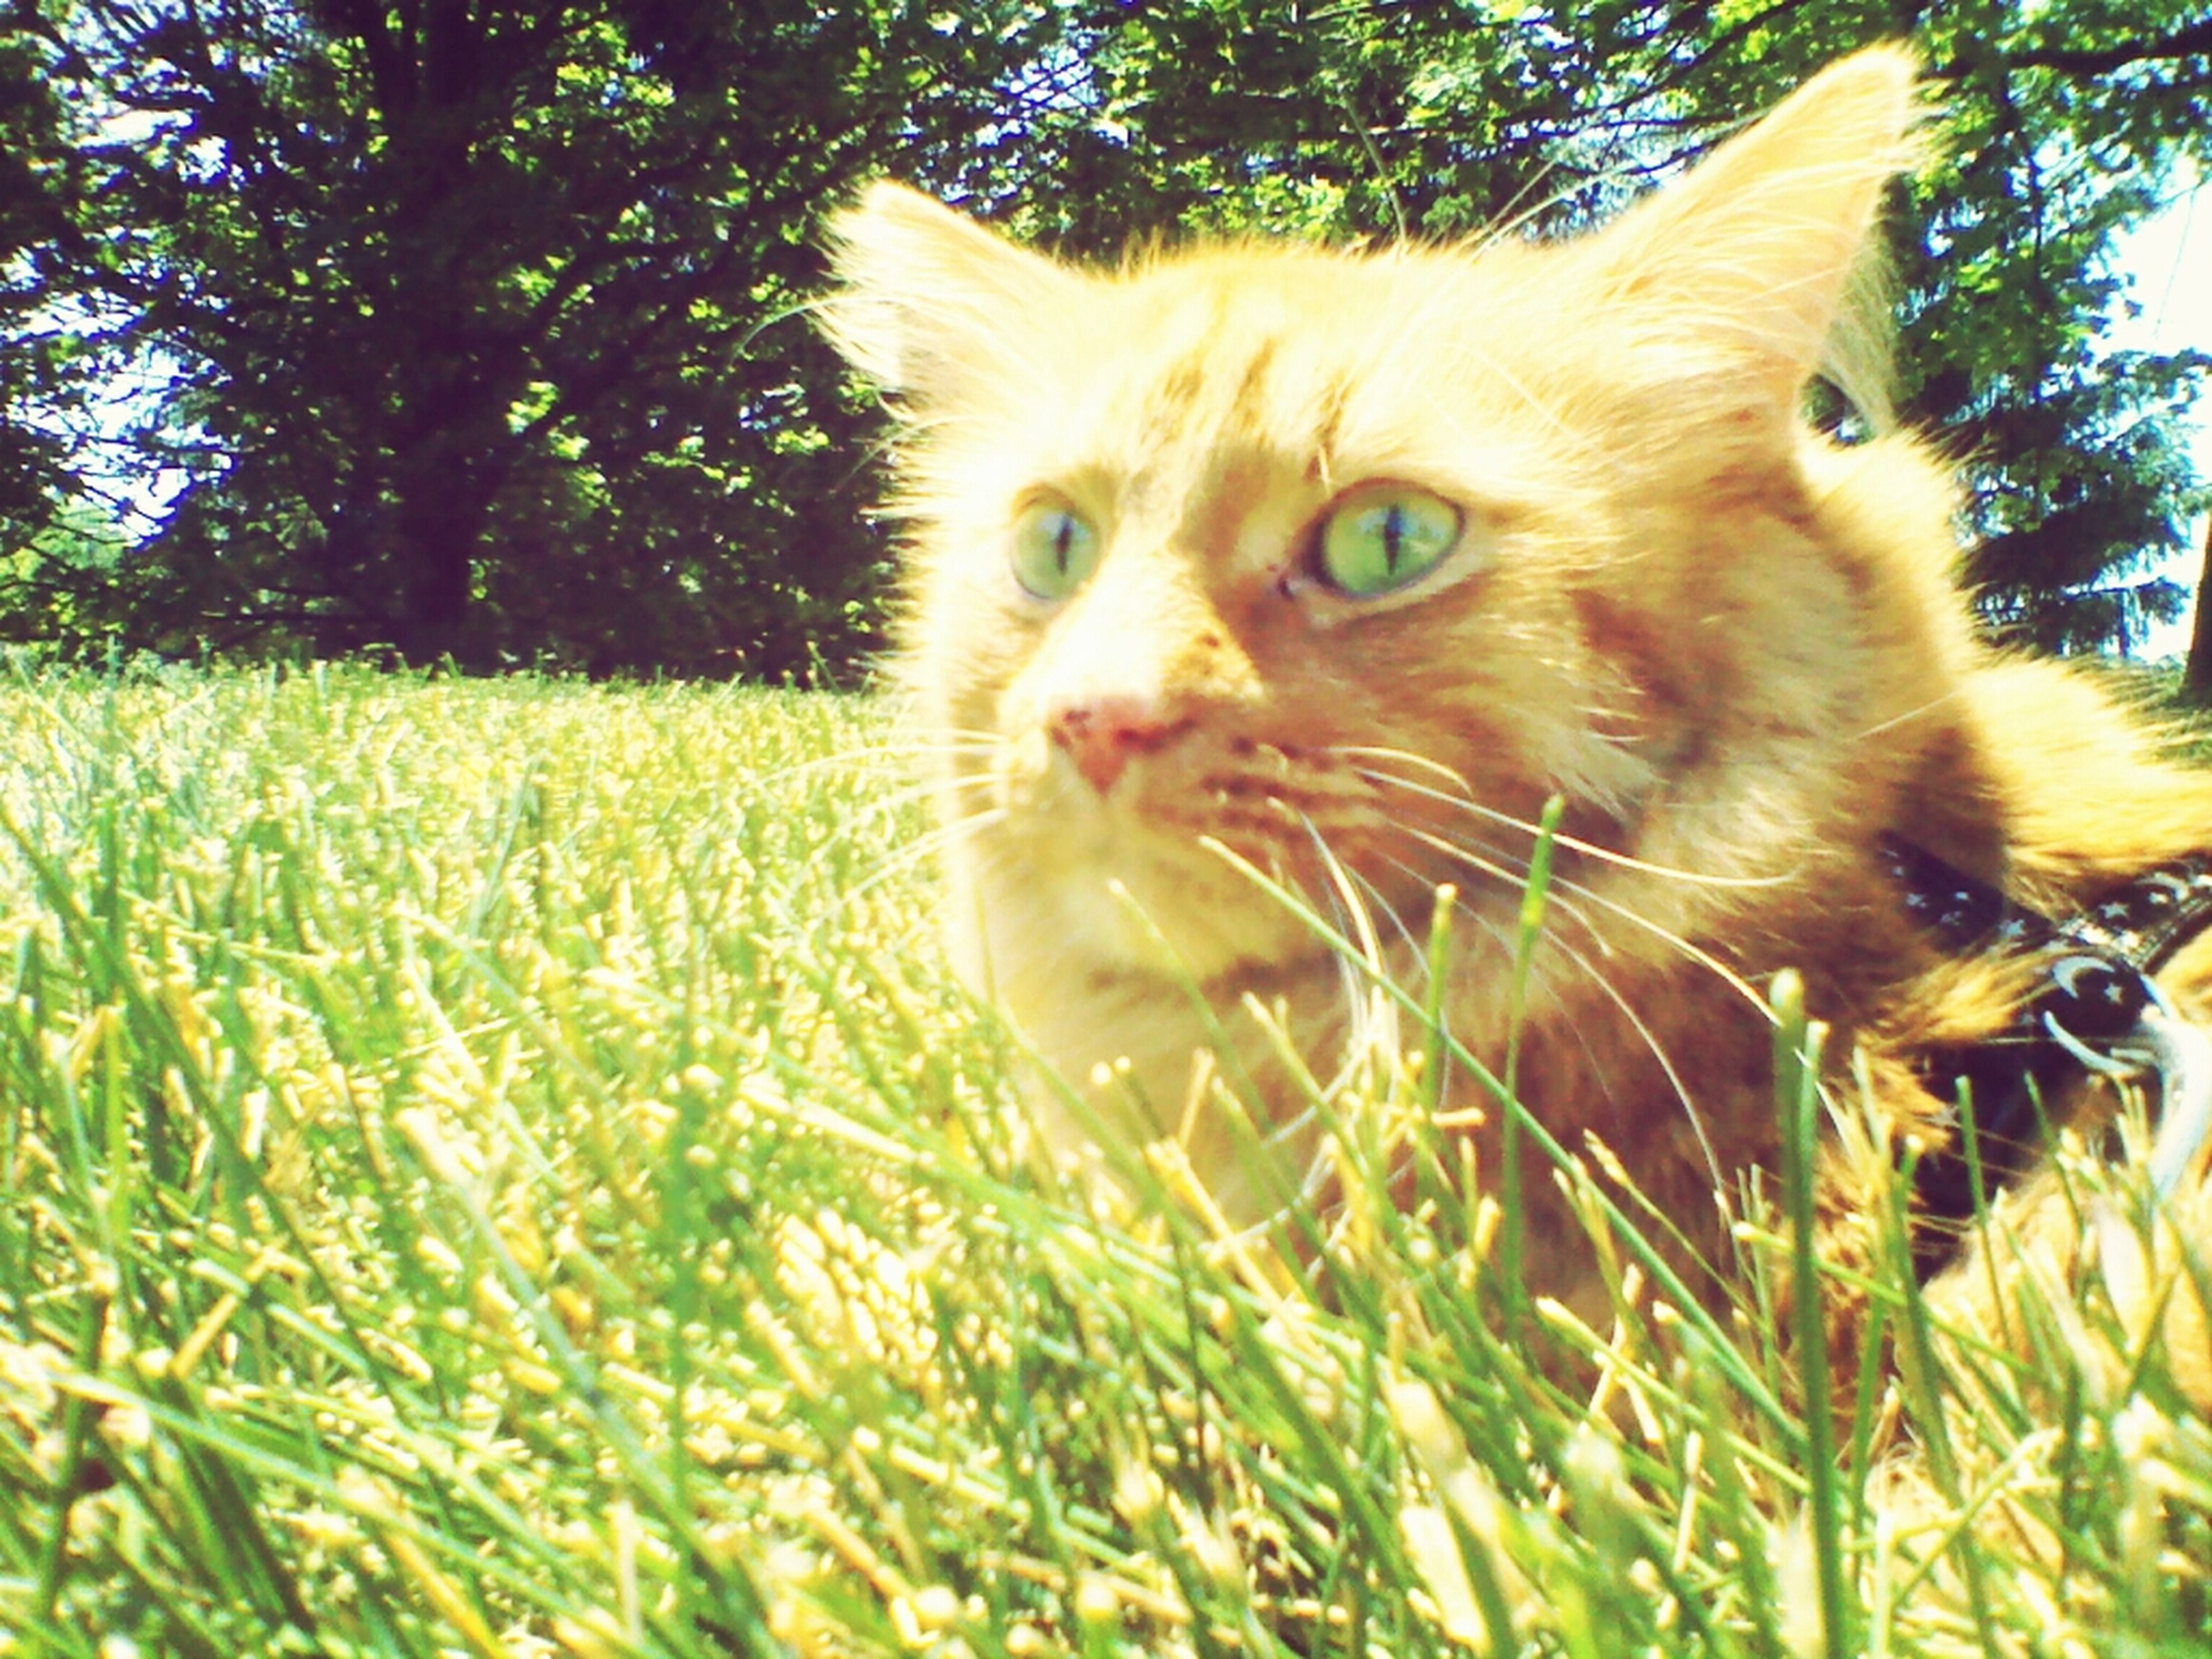 animal themes, one animal, grass, domestic animals, pets, mammal, domestic cat, field, feline, grassy, cat, whisker, green color, growth, close-up, nature, looking away, plant, animal head, day